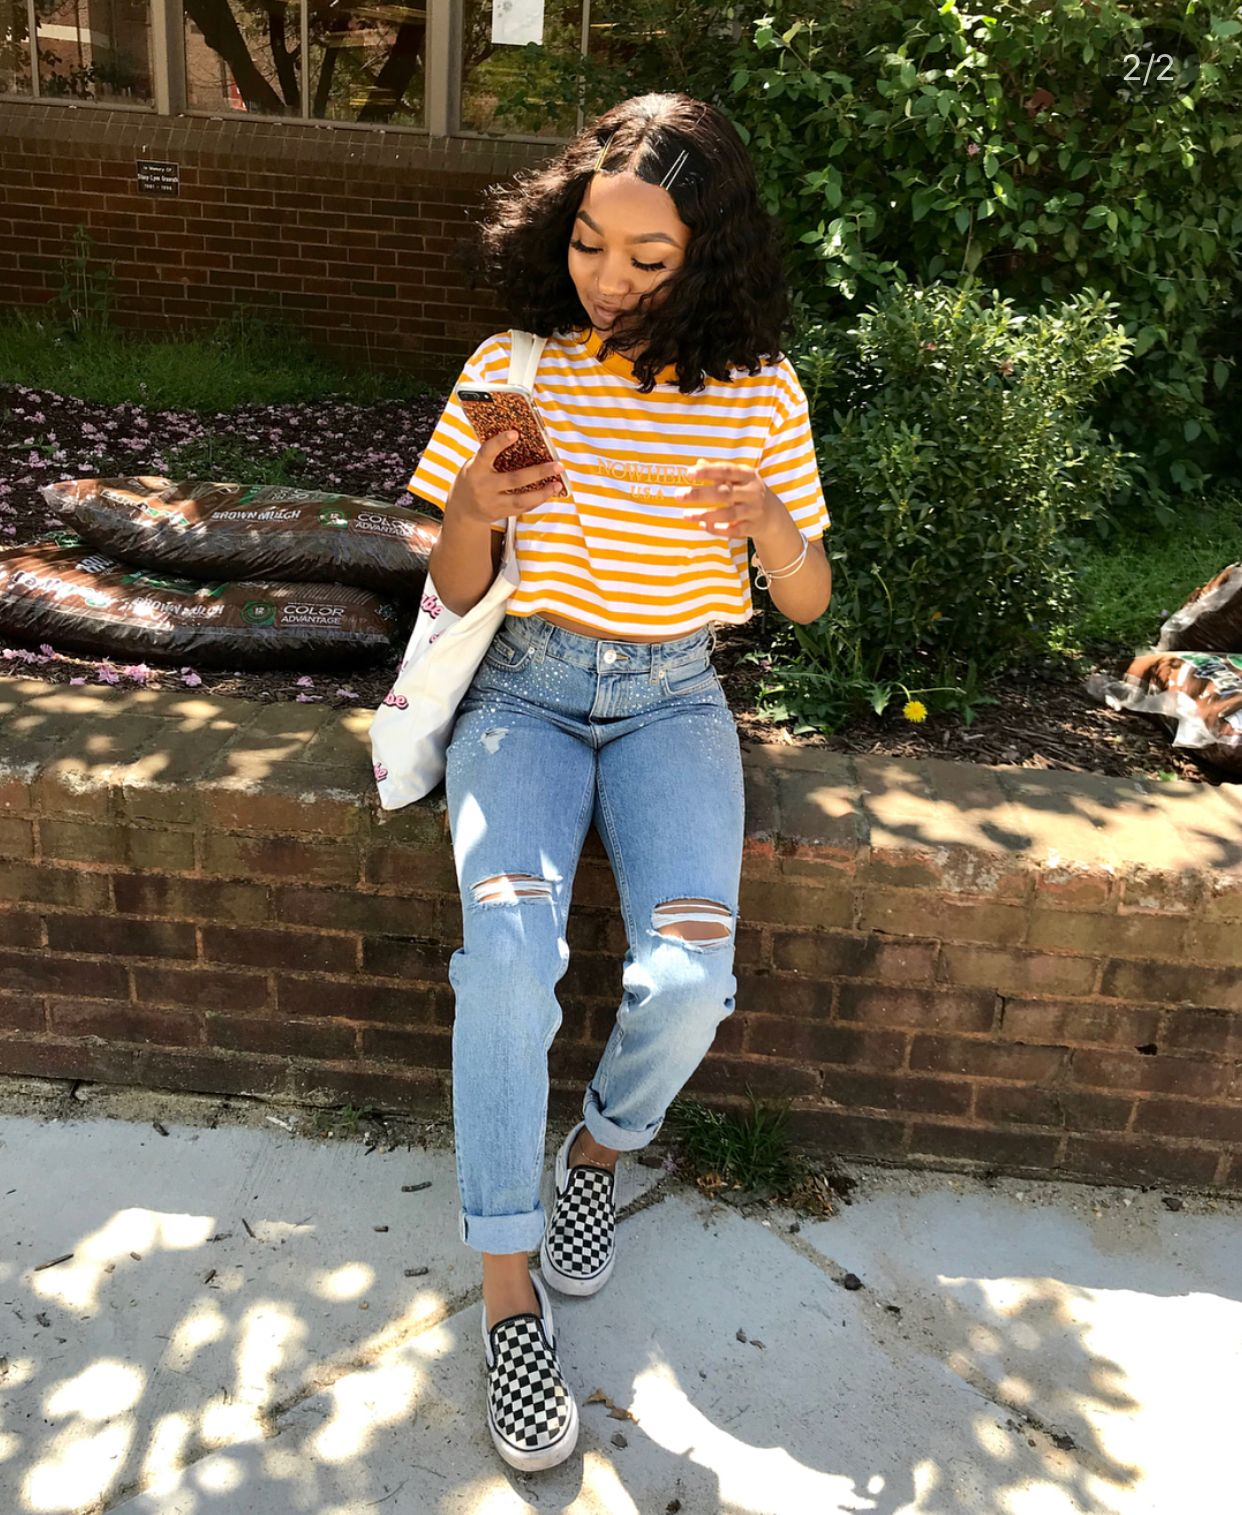 80b76221728 Pin by Amber Brannae on Instagram baddie outfits in 2018